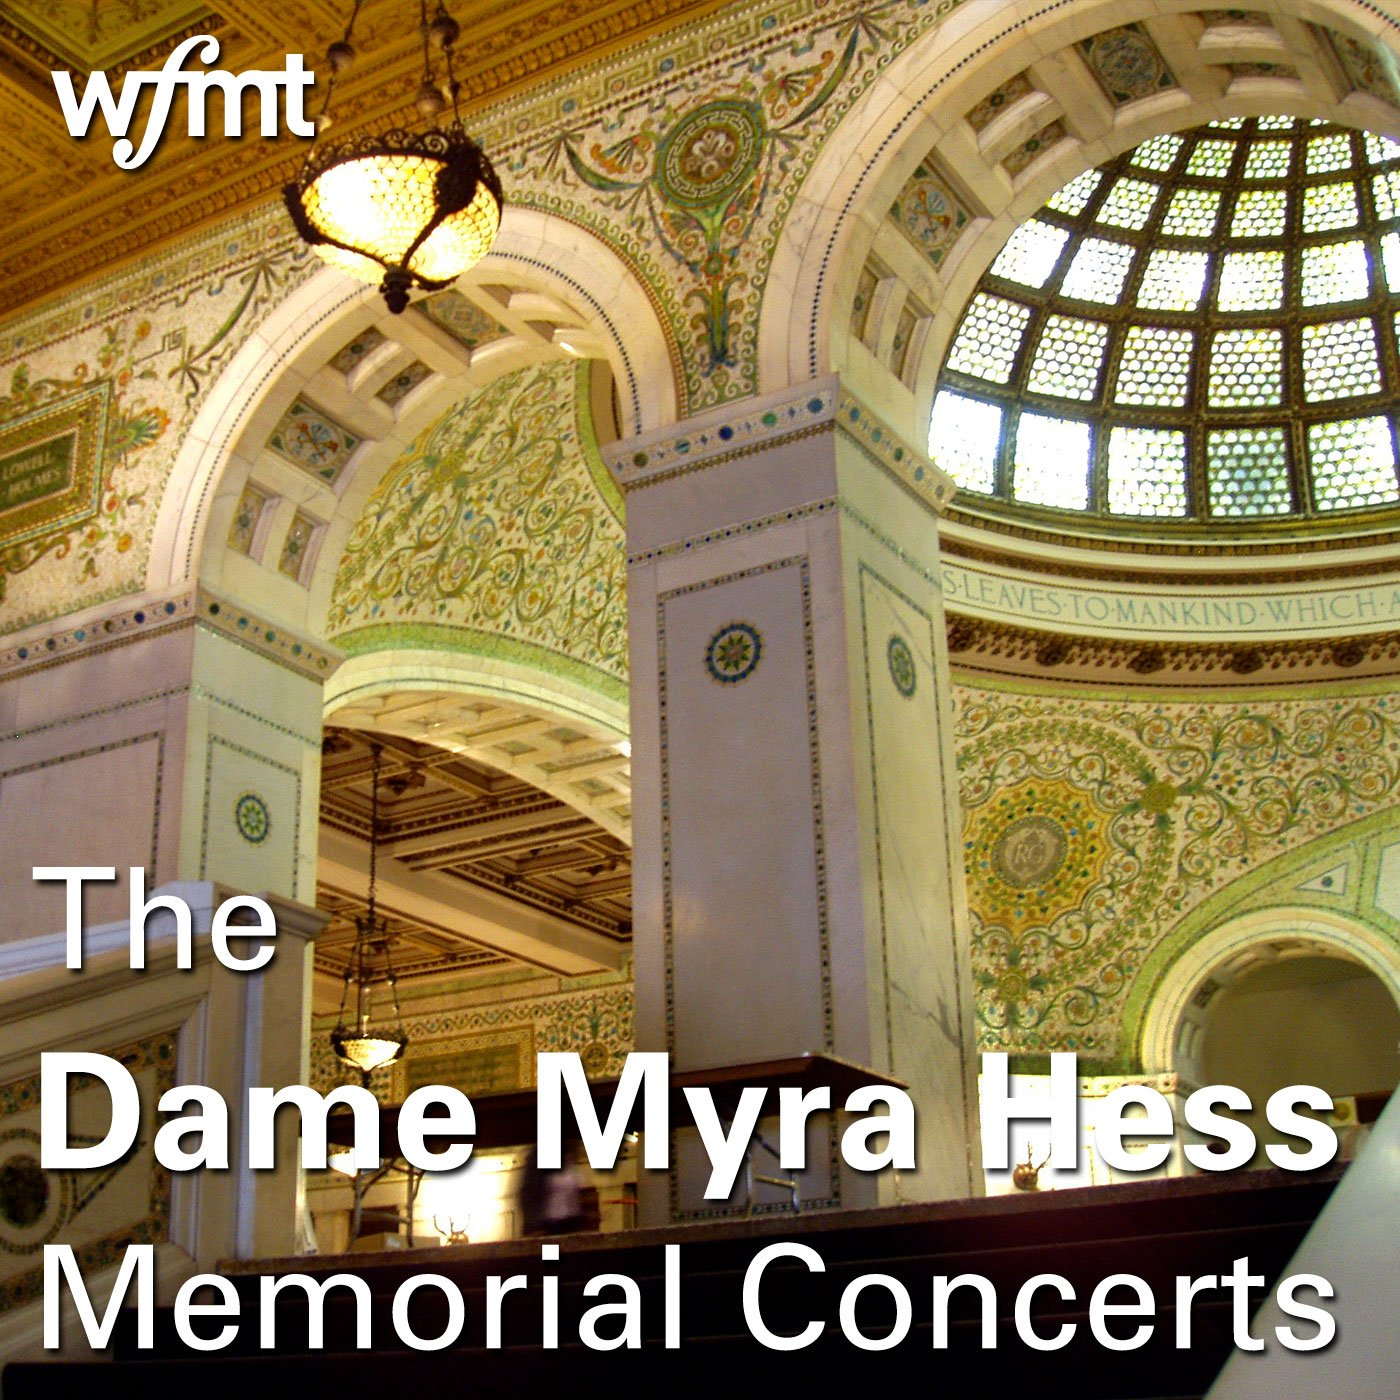 The Dame Myra Hess Memorial Concerts podcast